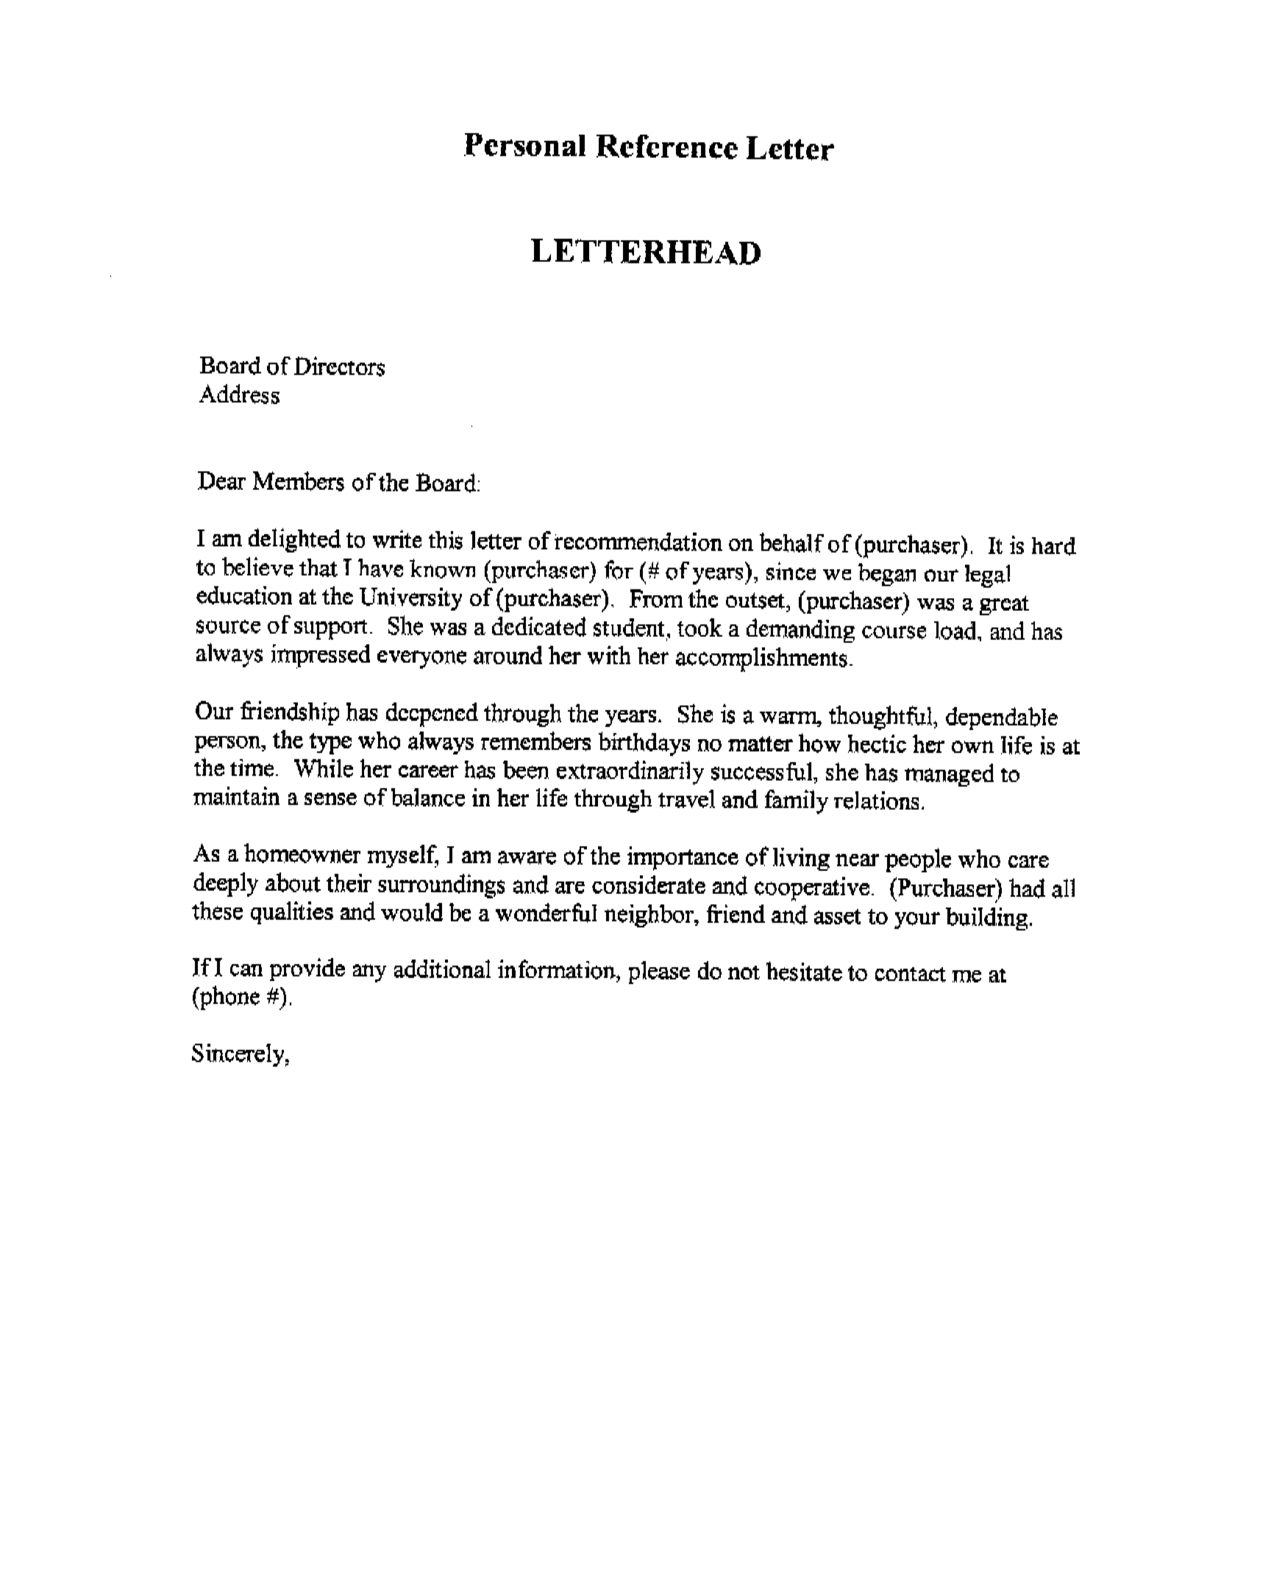 Letter of Recommendation Examples and Writing Tips | A letter ...